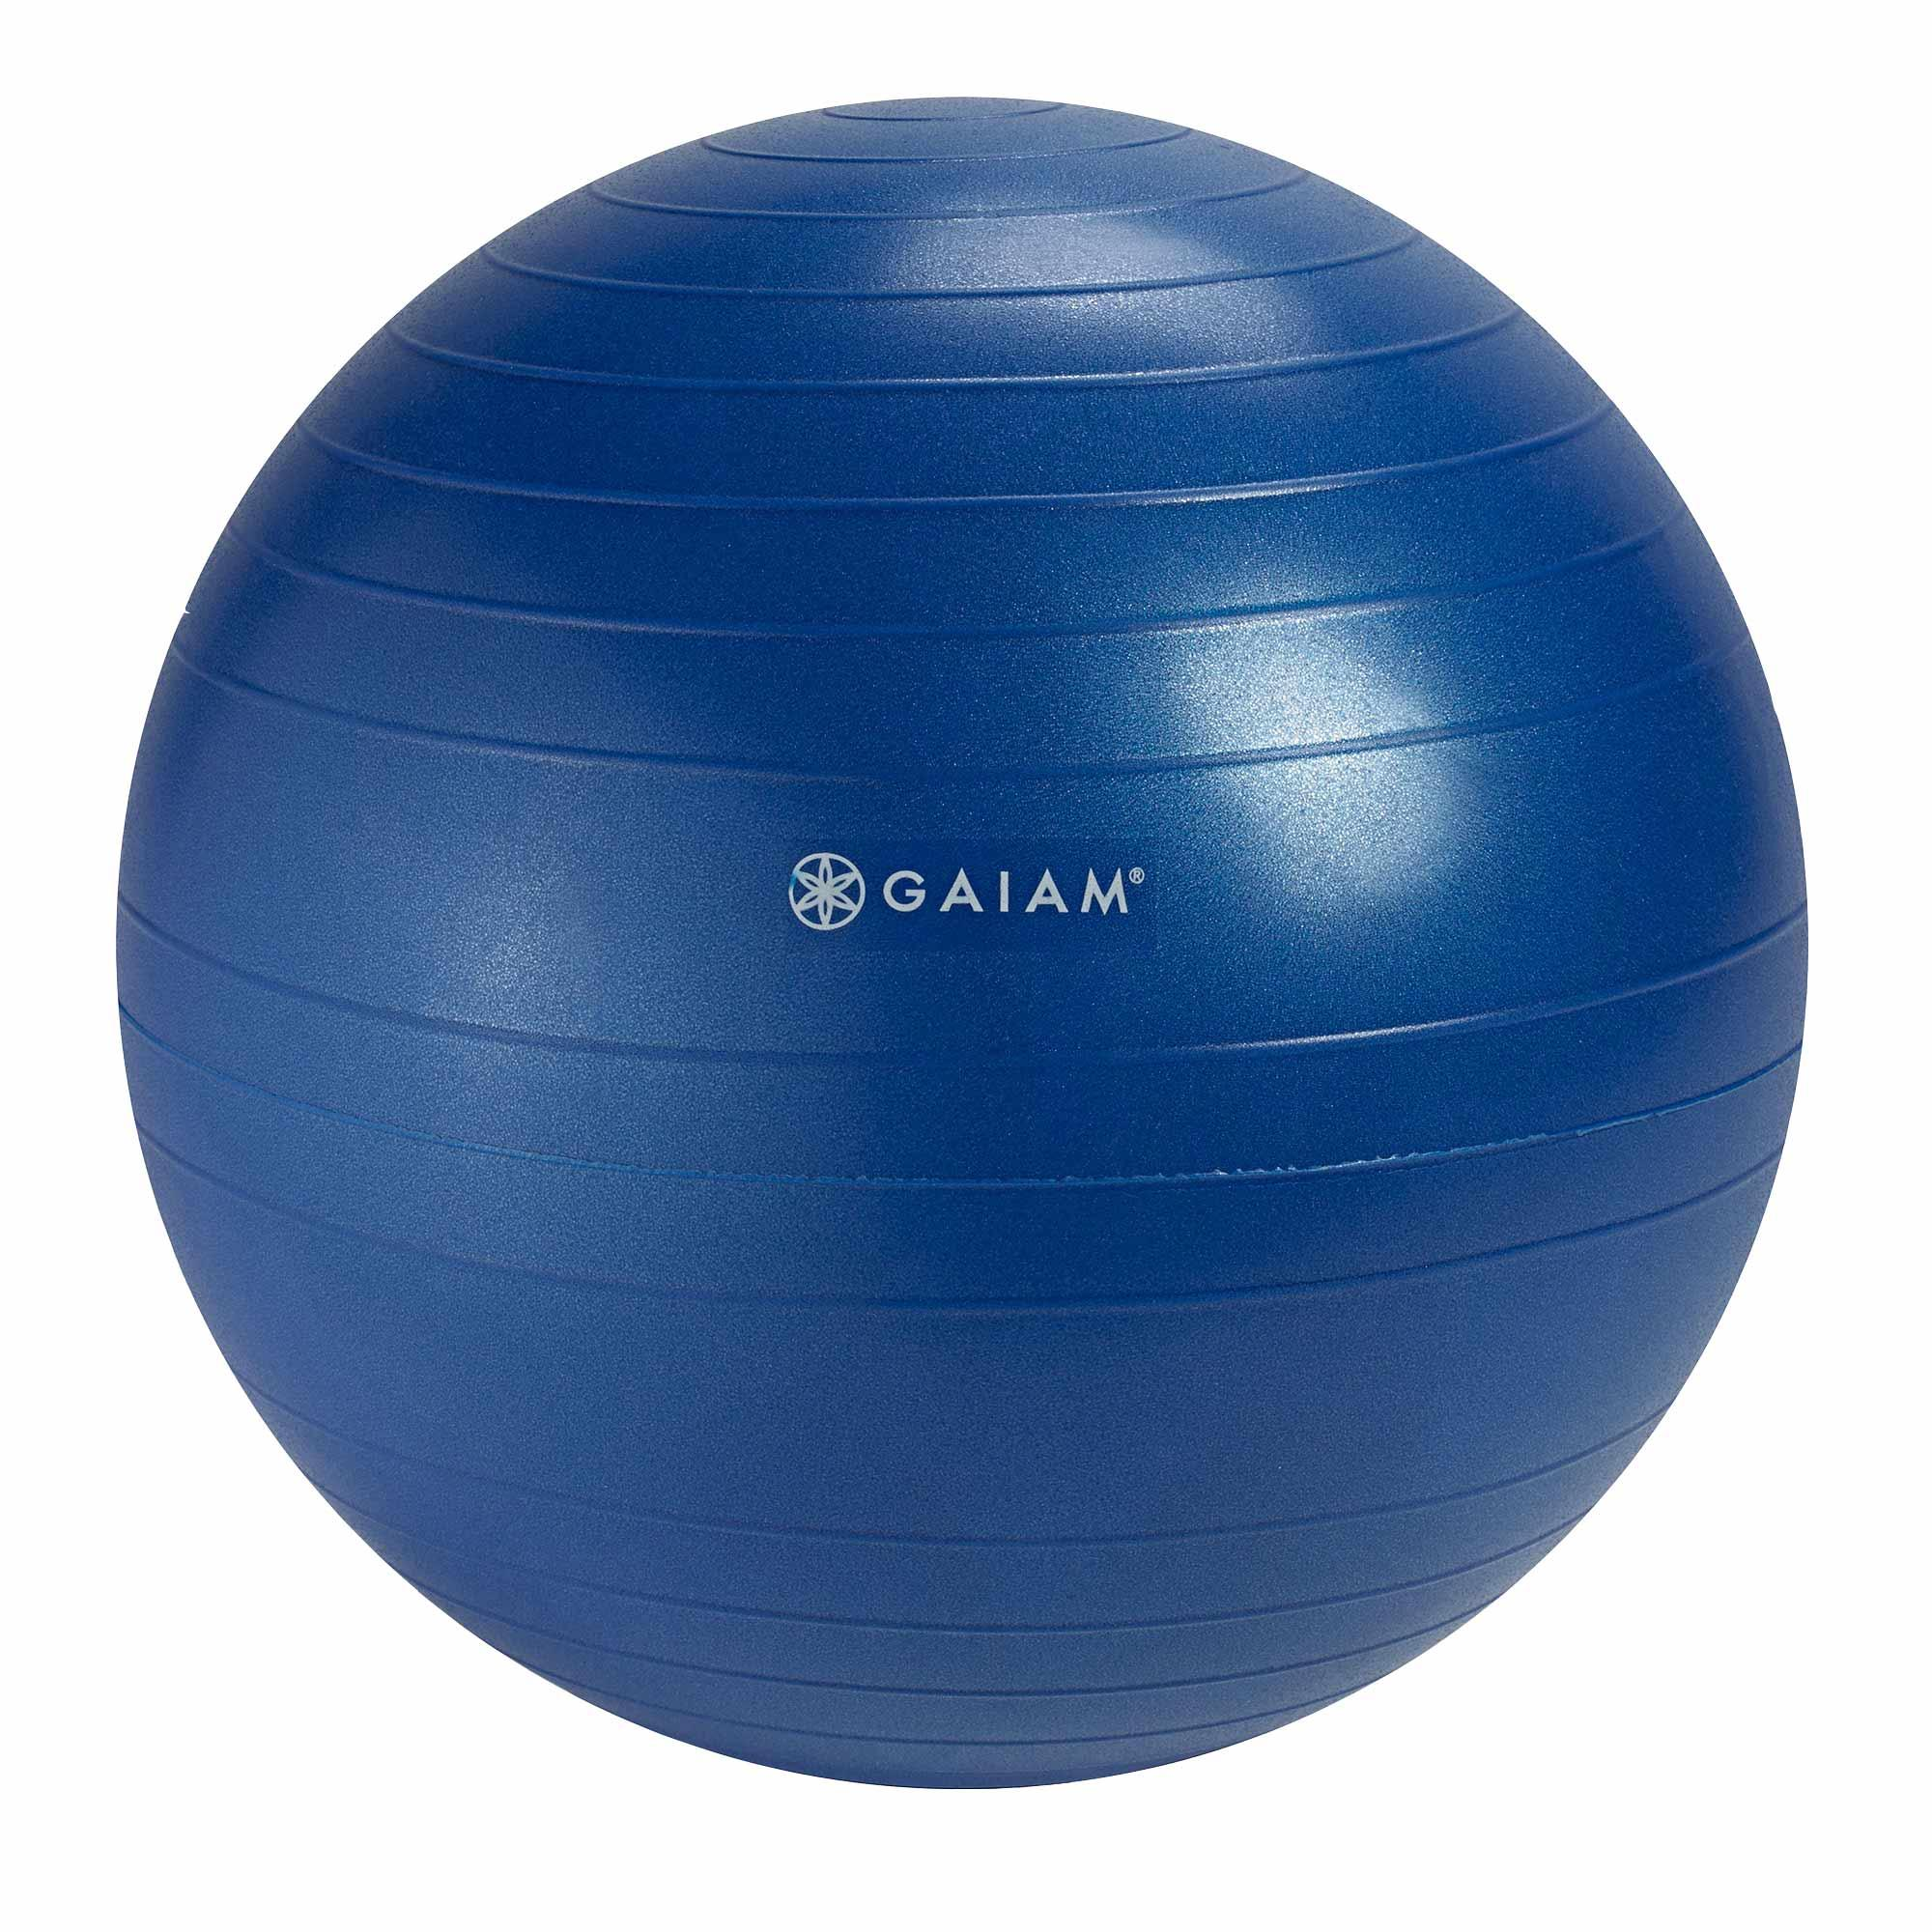 Gaiam Balance Ball Chair Amazon Gaiam Balance Ball Chair Replacement Ball